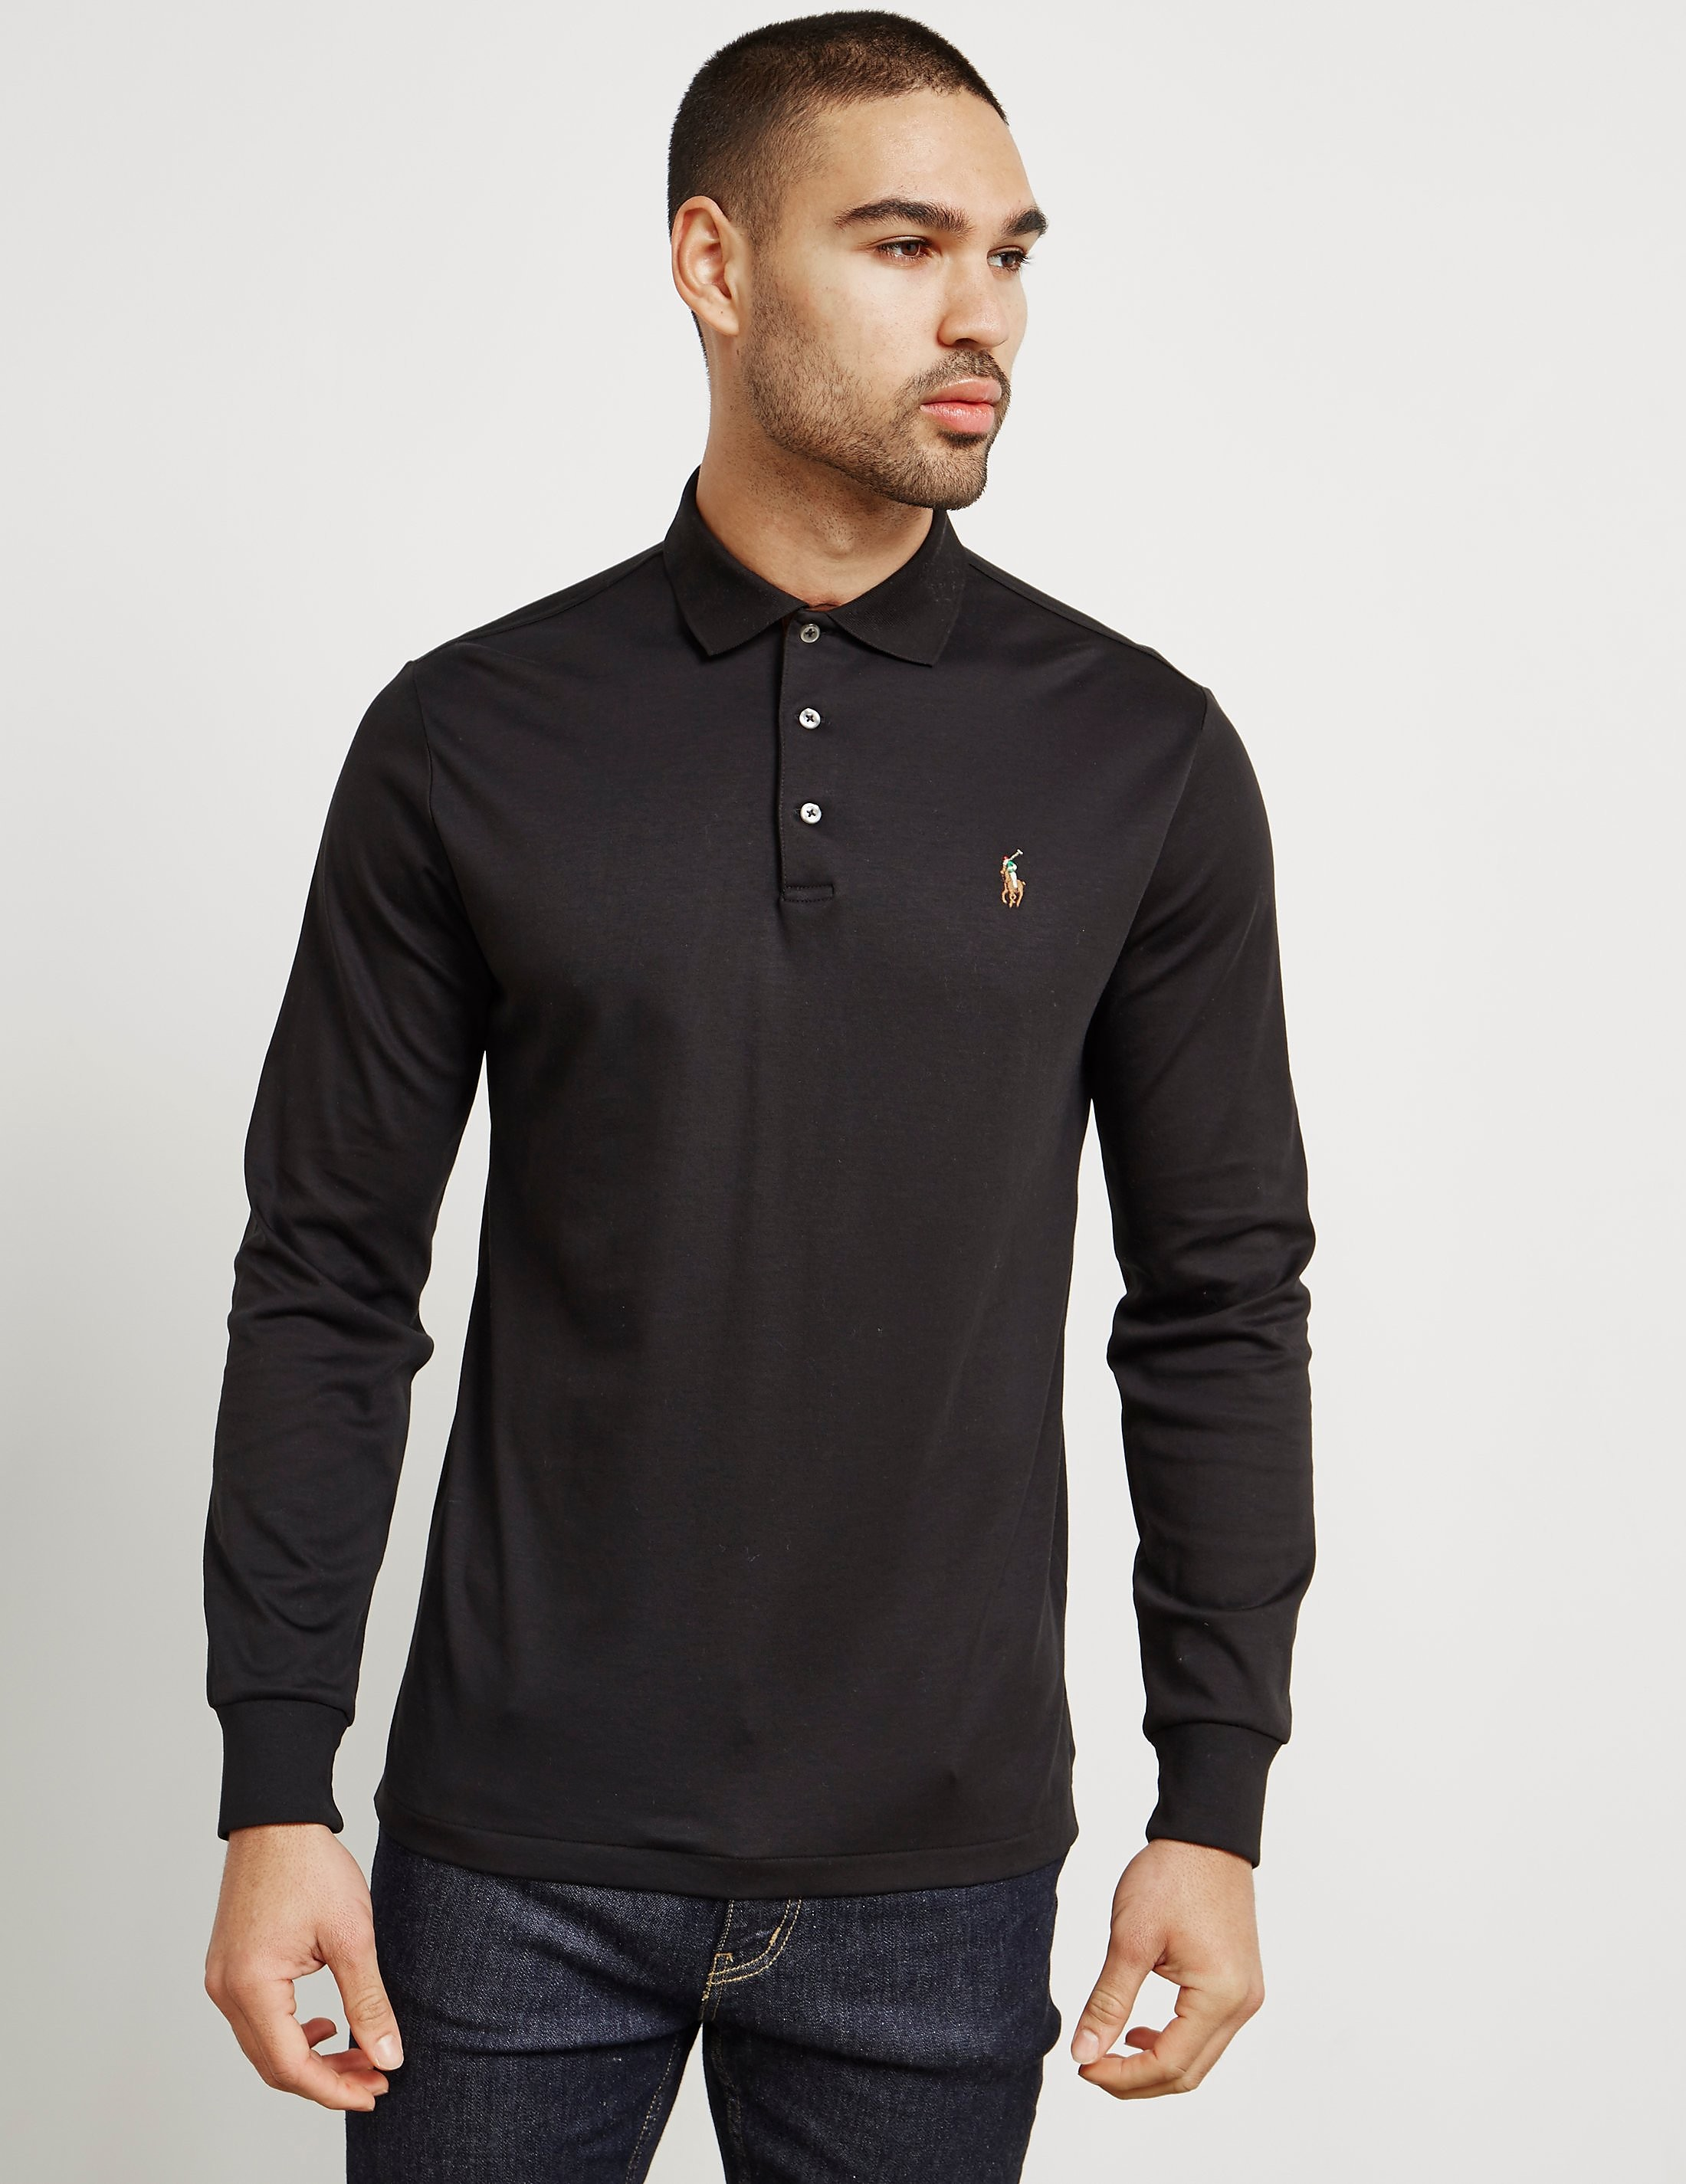 Polo Ralph Lauren Pima Cotton Long Sleeve Polo Shirt